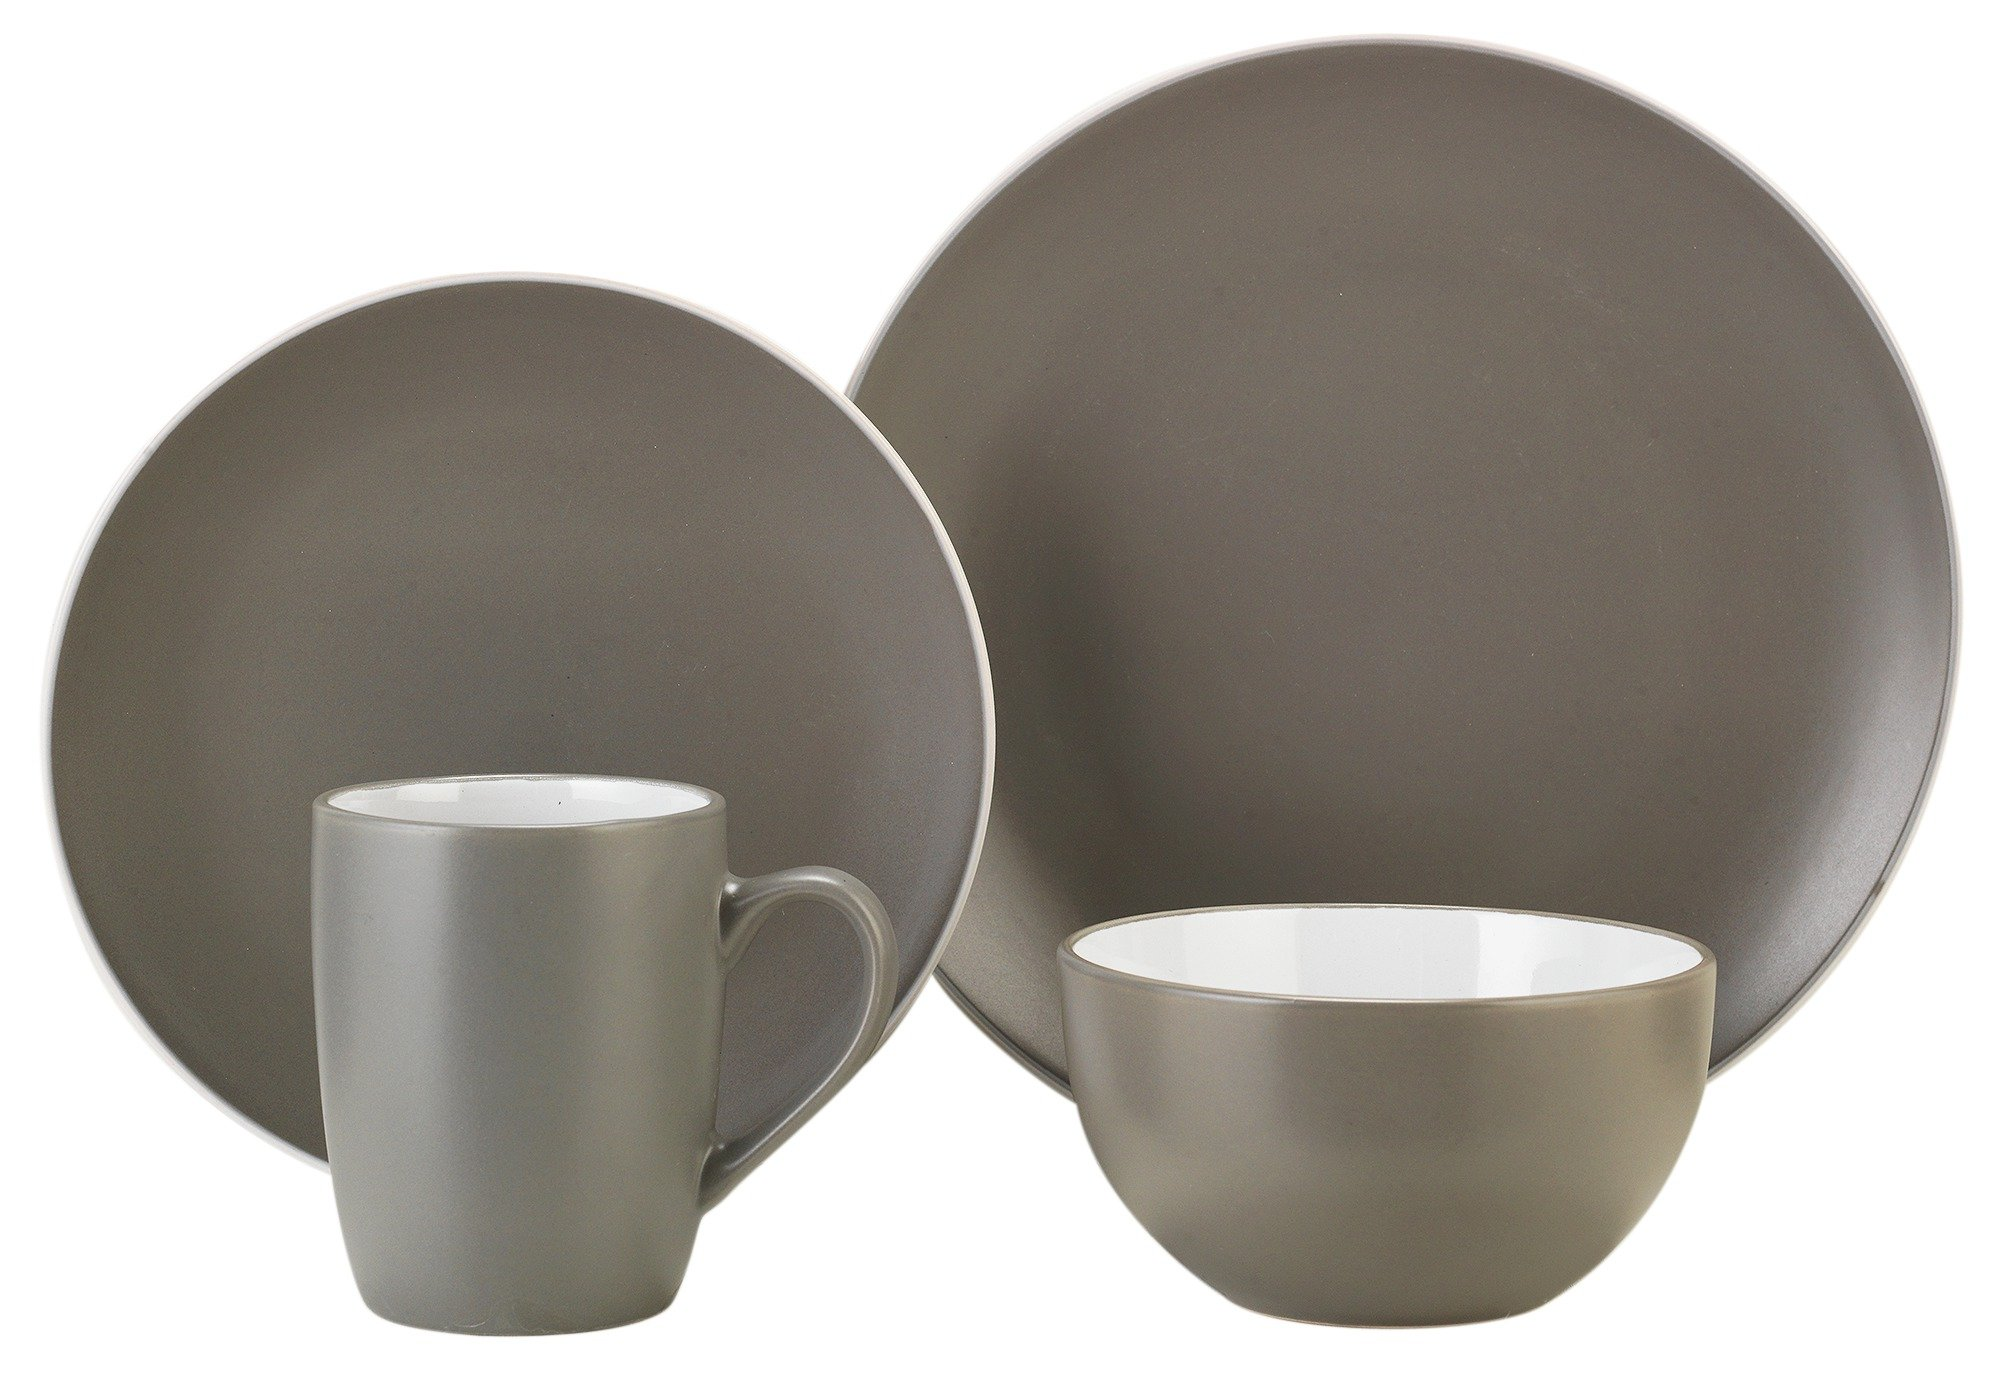 Image of ColourMatch 12 Piece Stoneware Dinner Set - Flint Grey